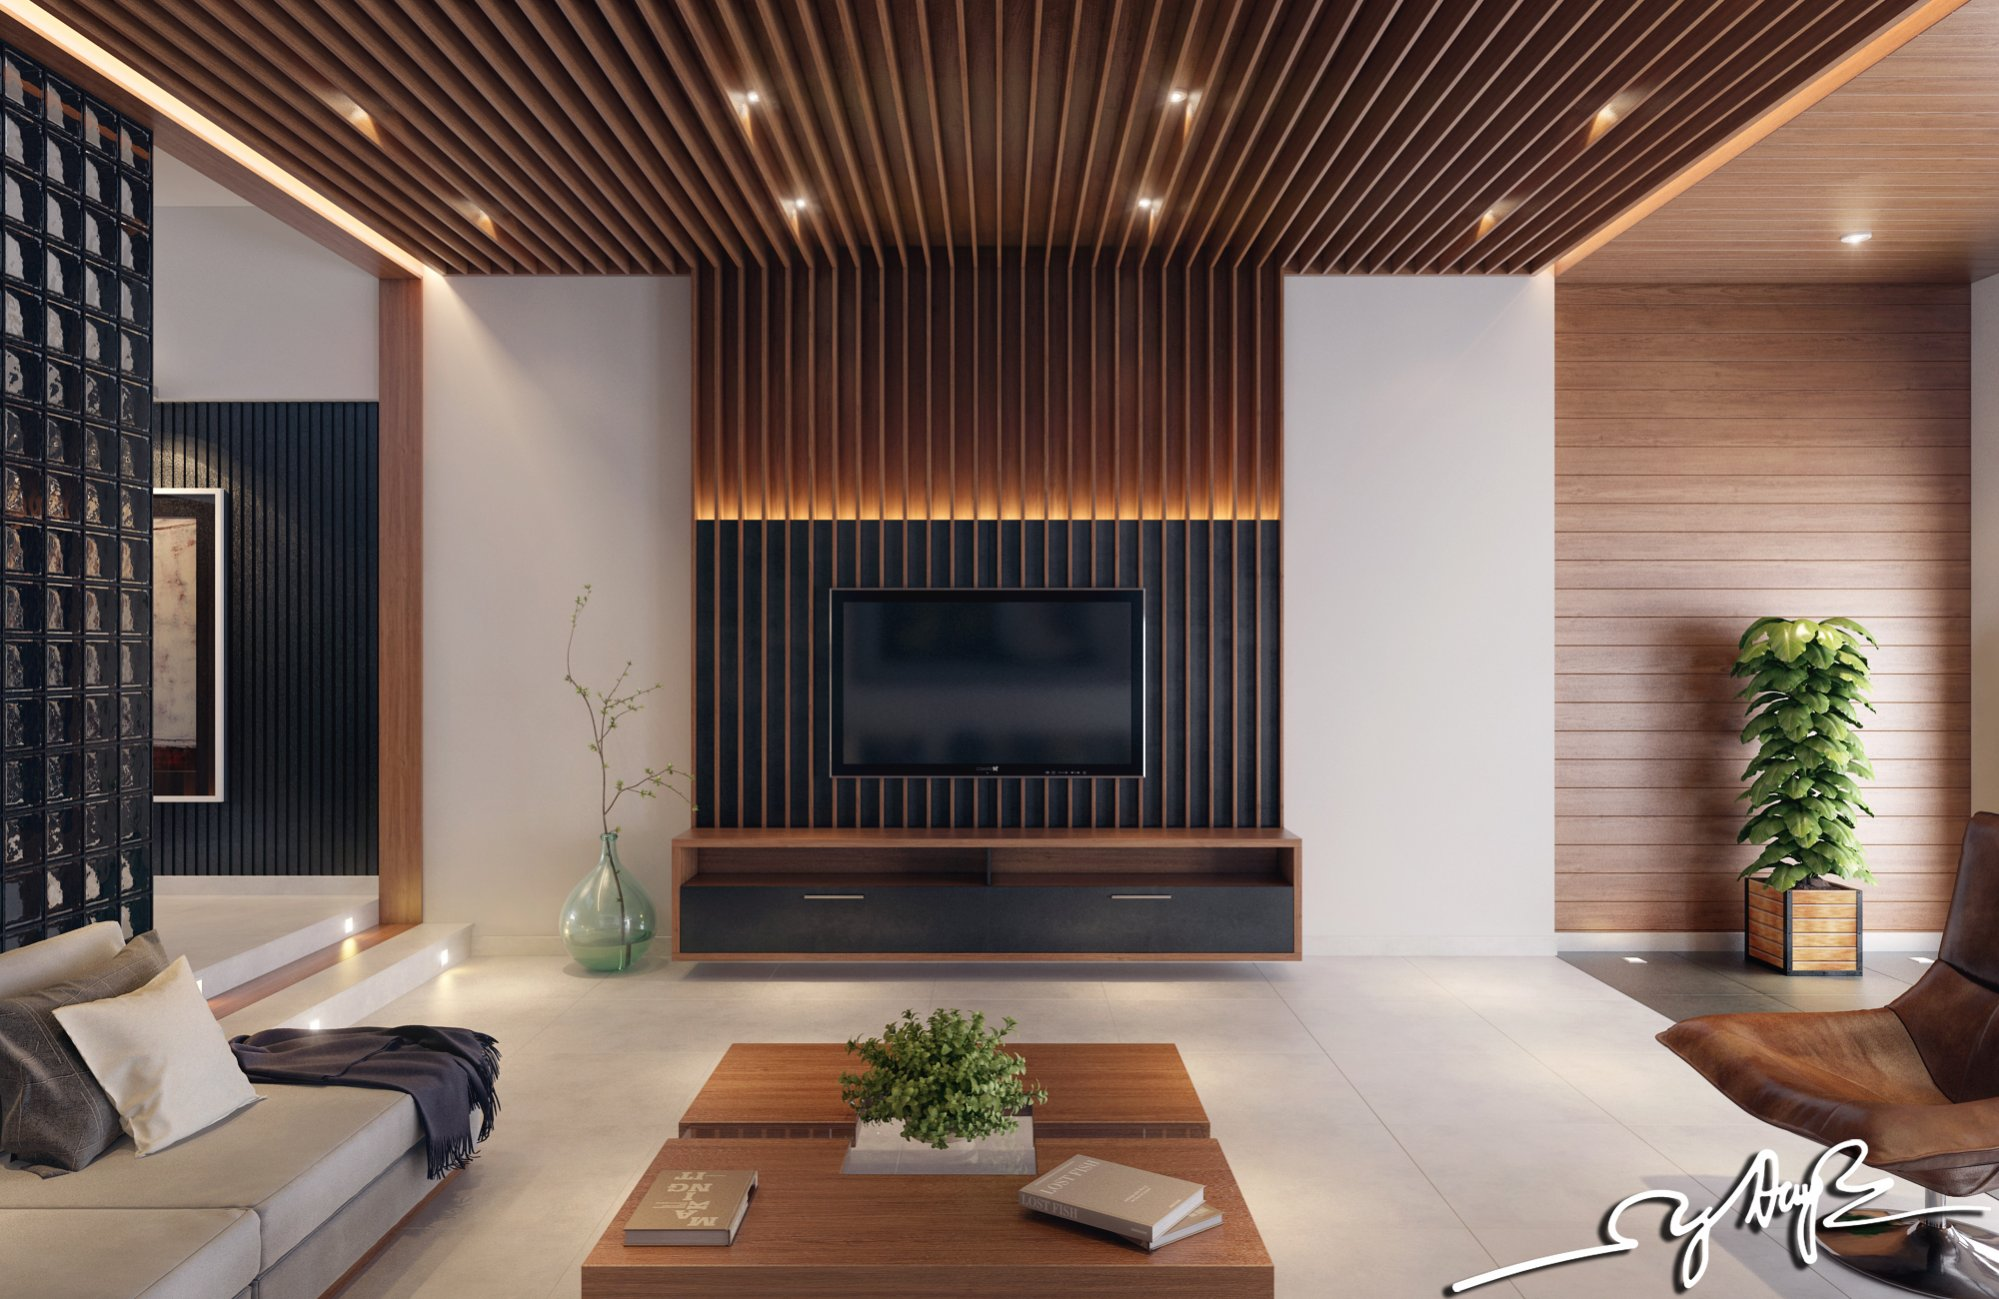 Wood Paneling For Walls Designs Interior Design Close To Nature Rich Wood Themes And